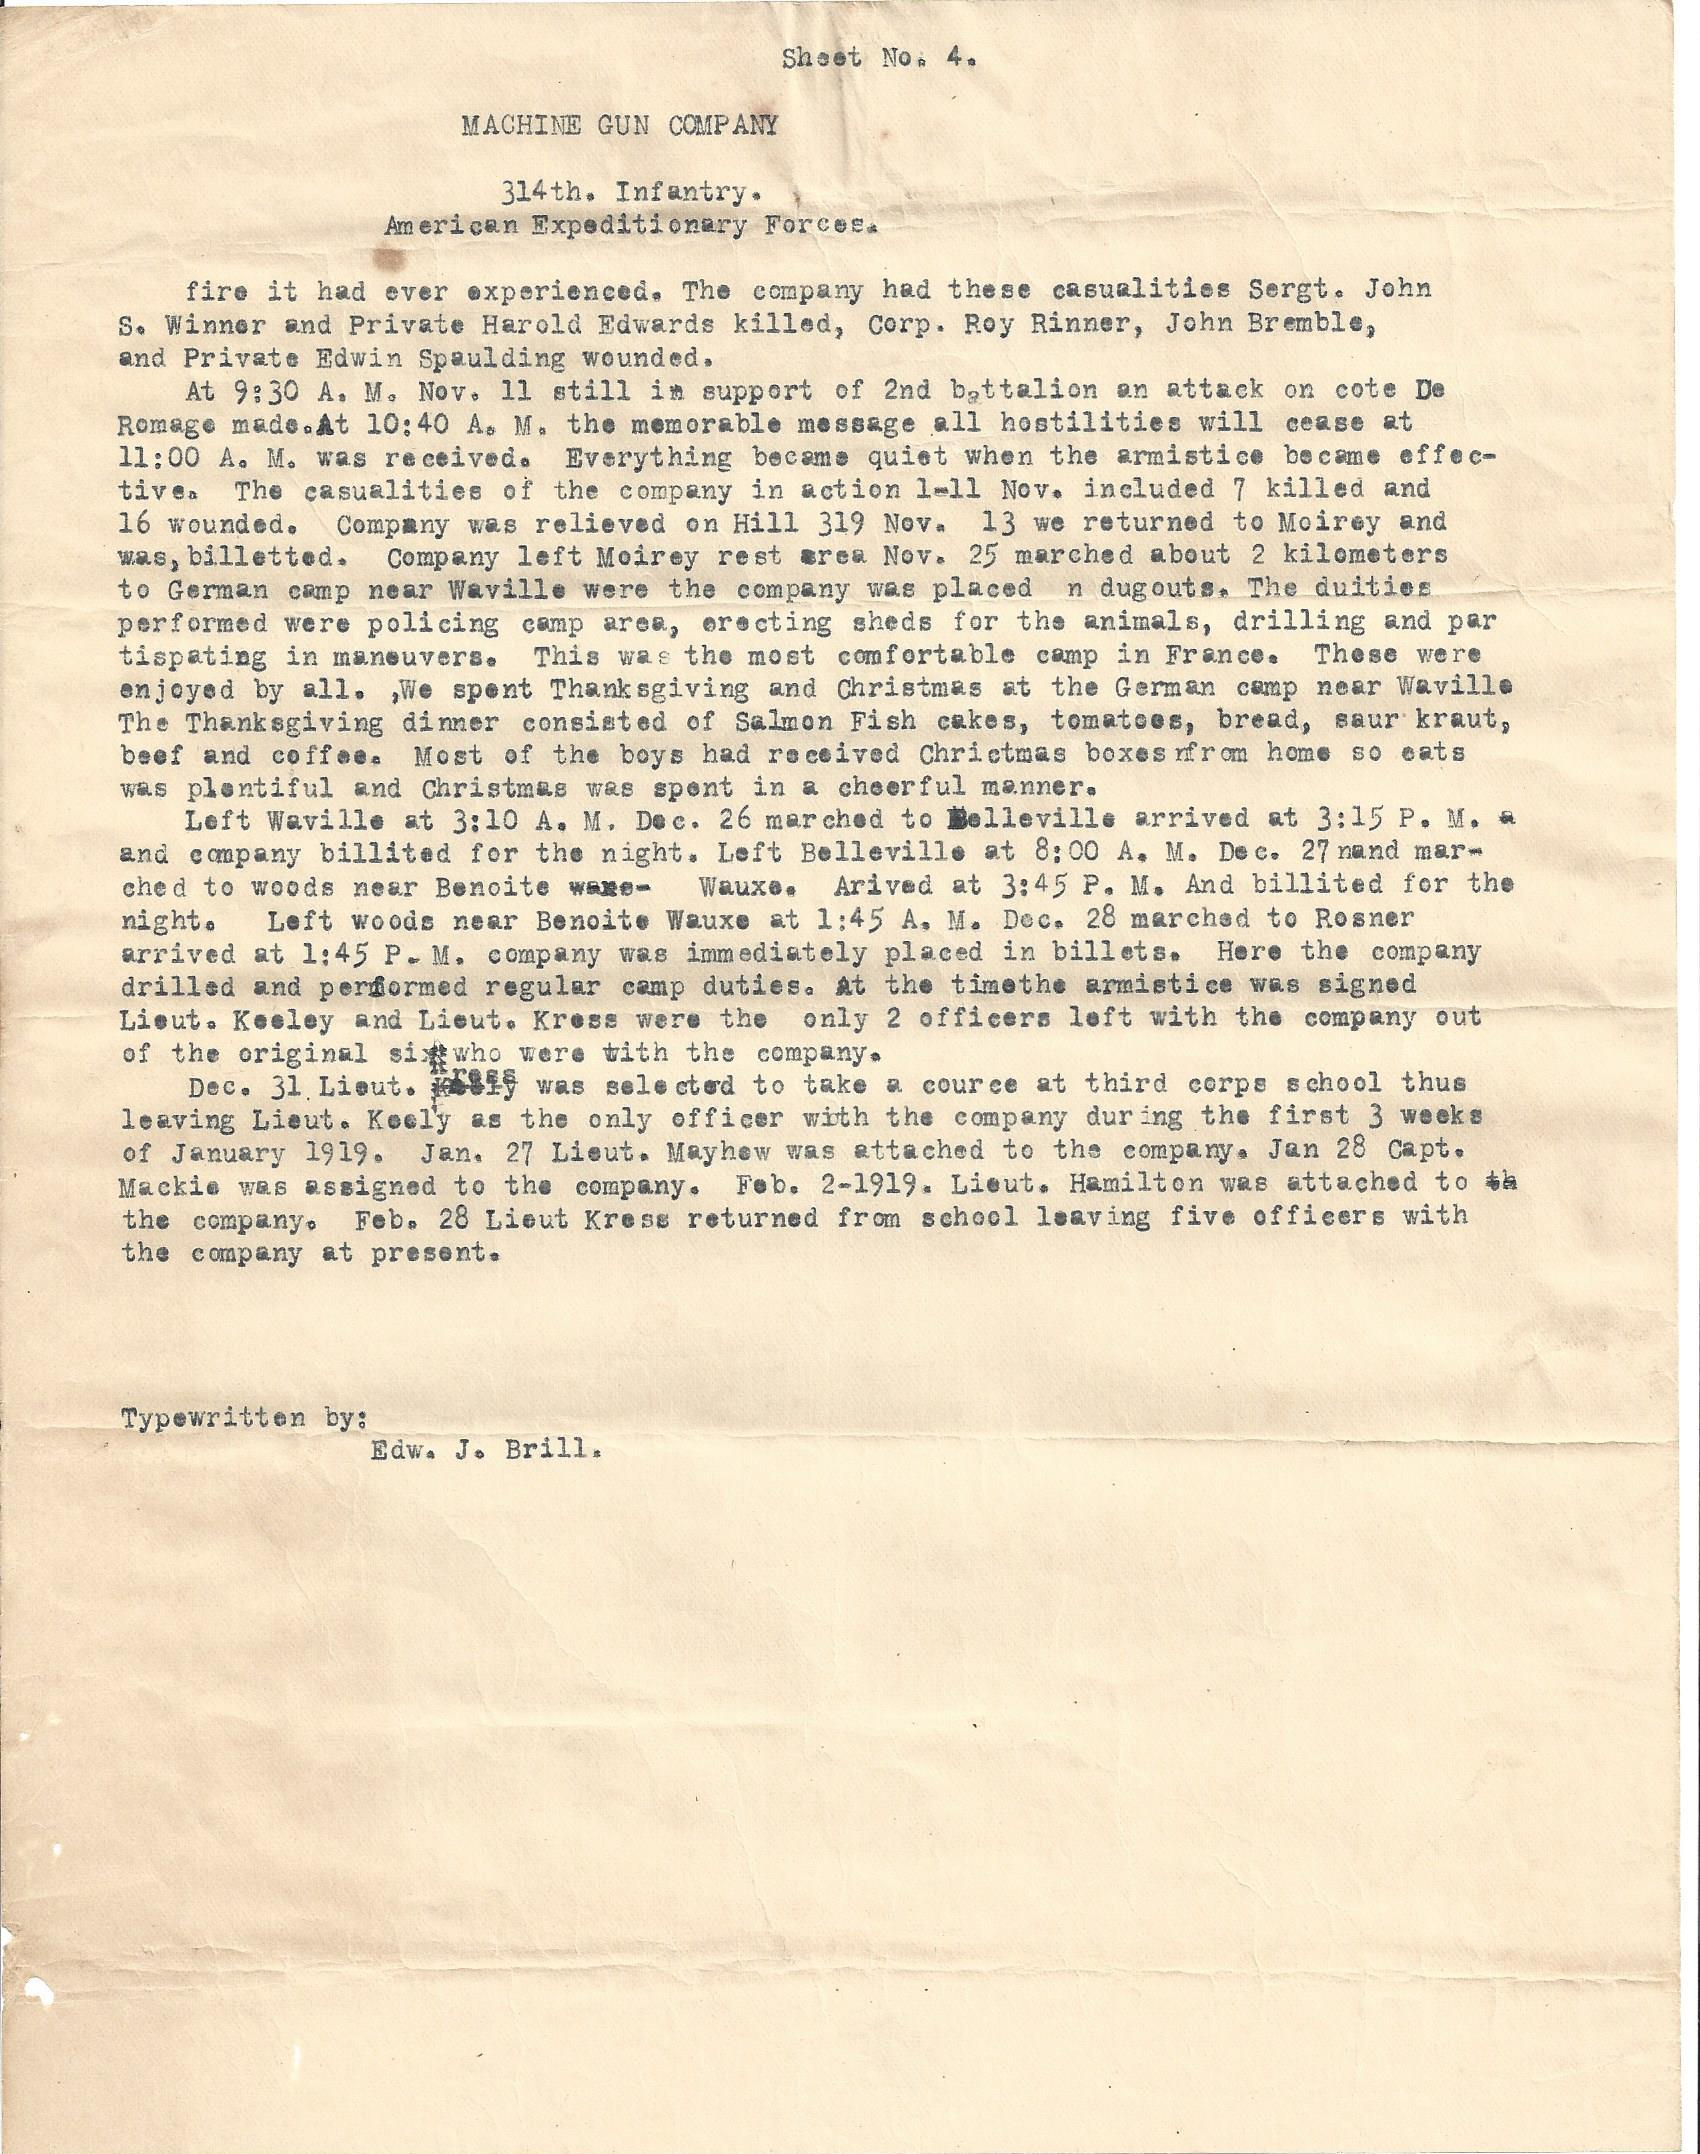 MG Company 314th Infantry AEF typewritten history page 4